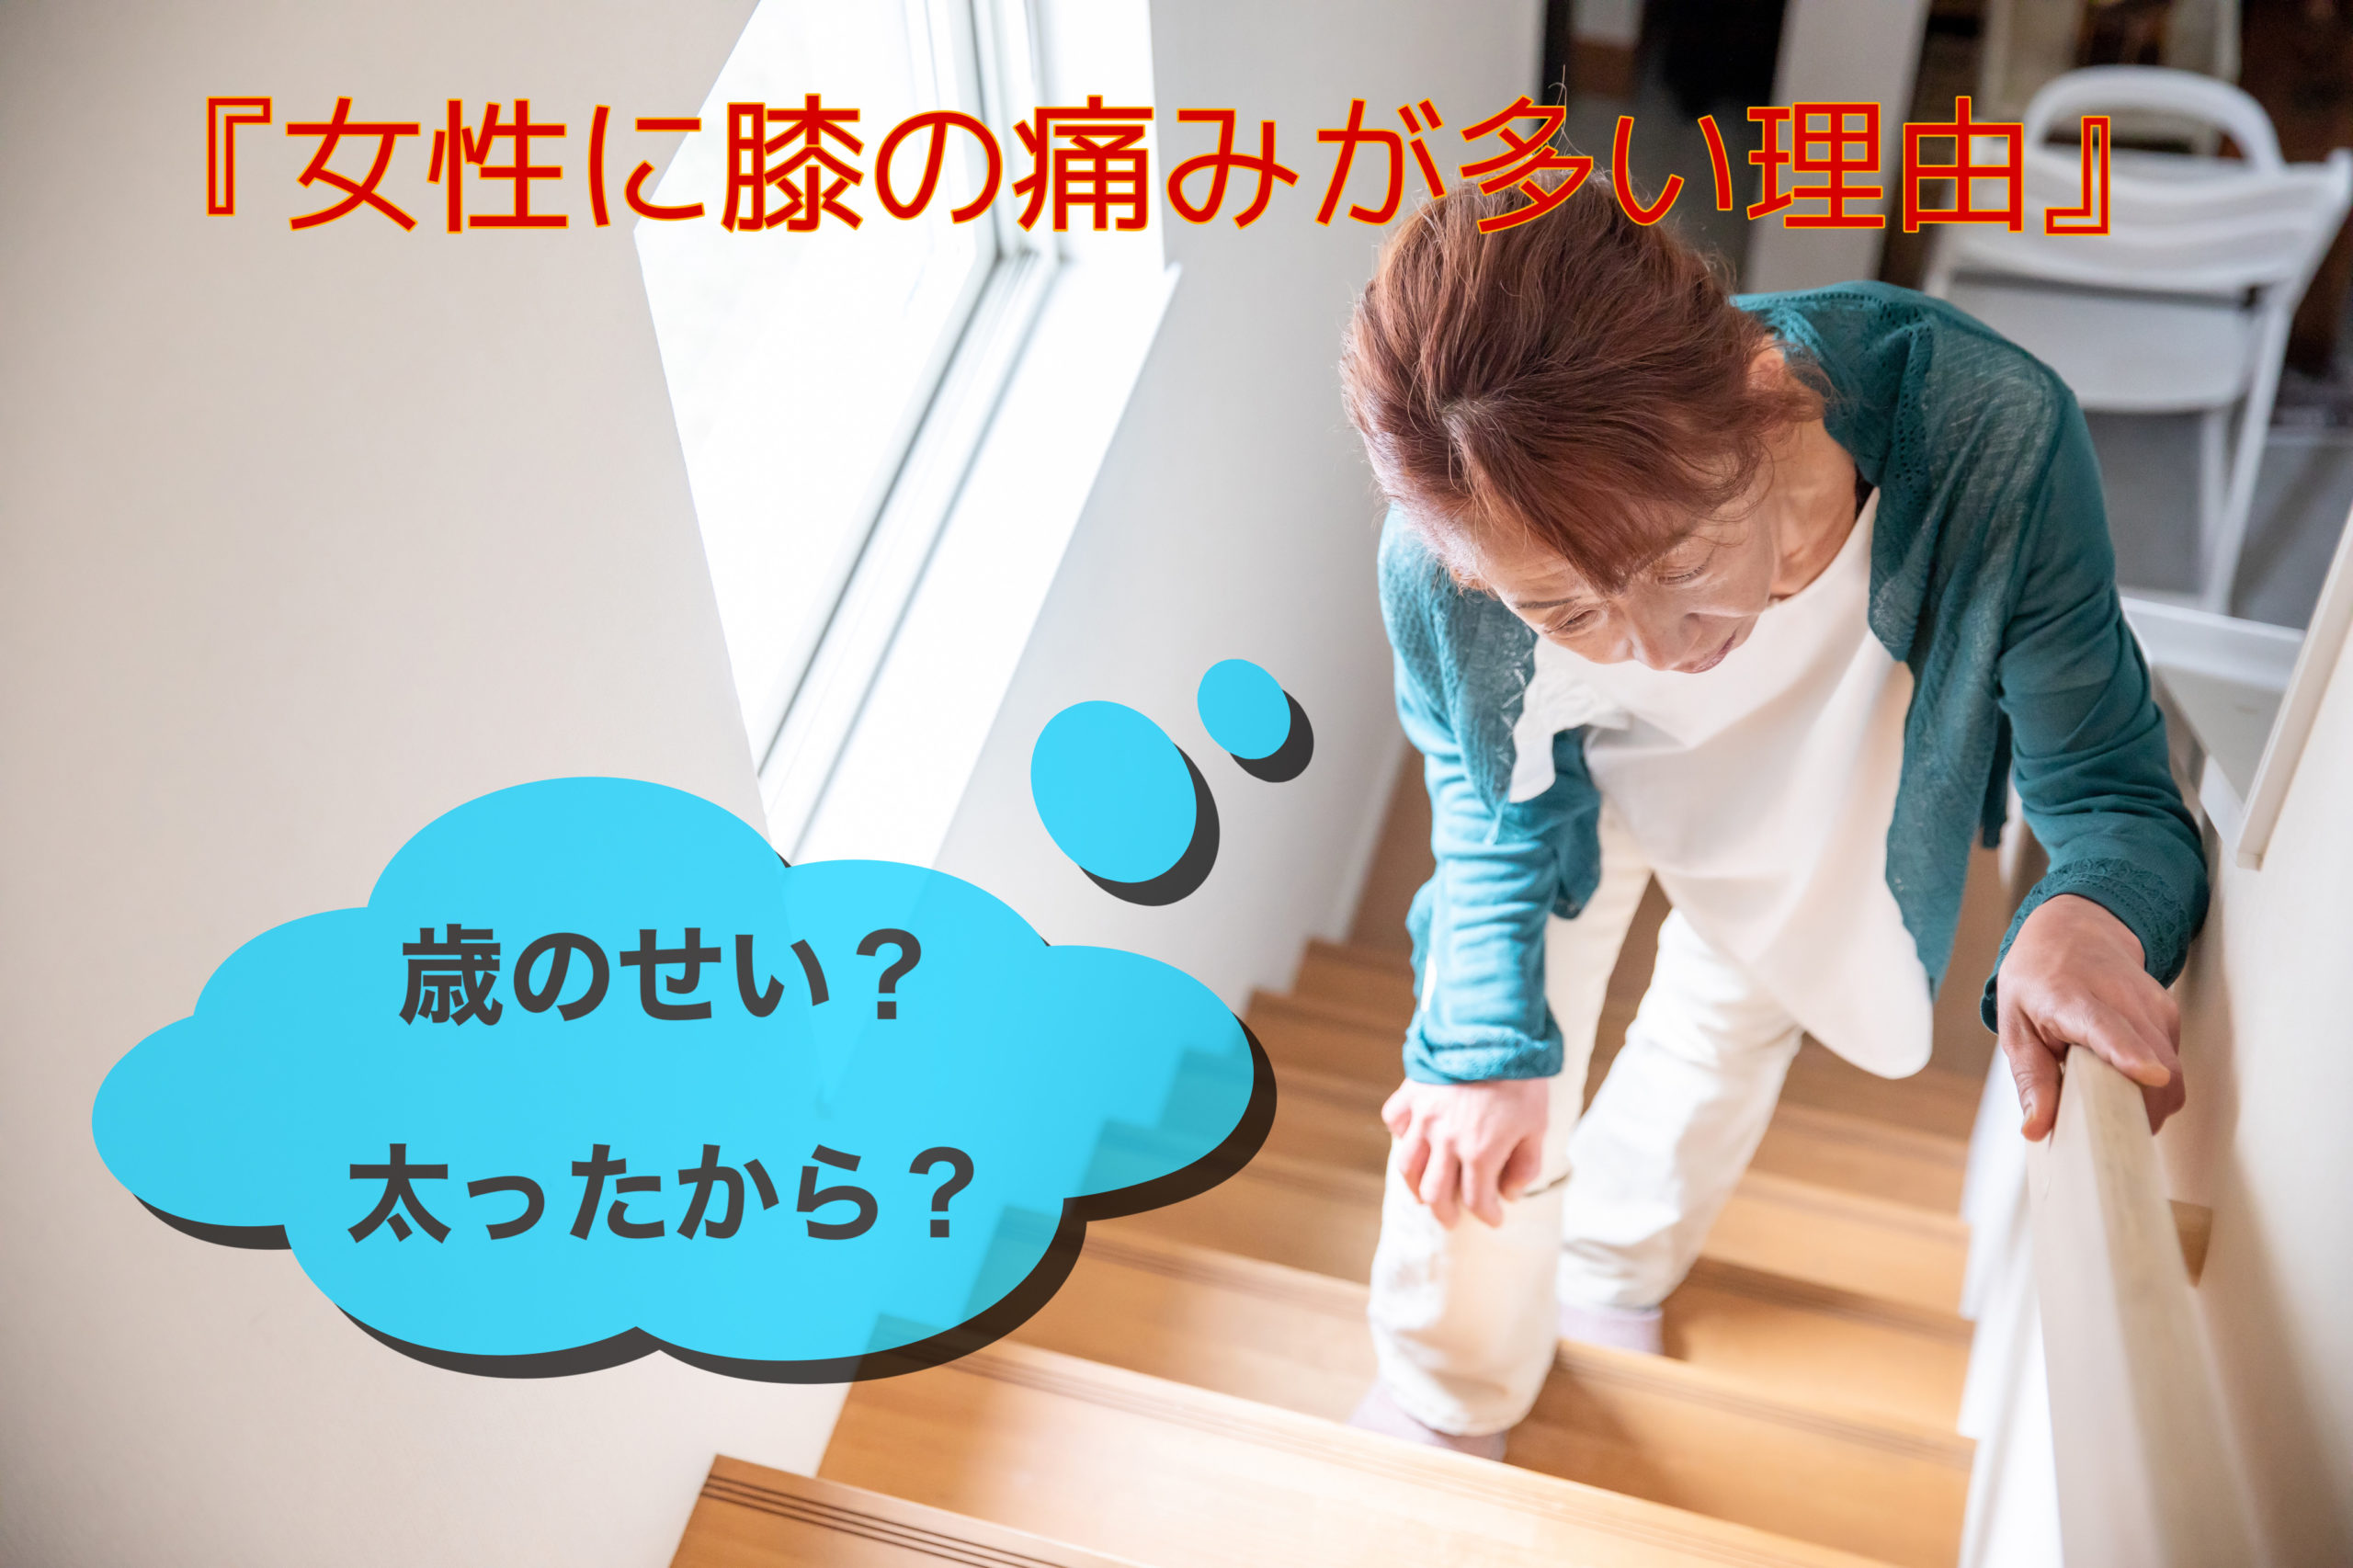 Read more about the article 女性に膝の痛みが多い理由を考える